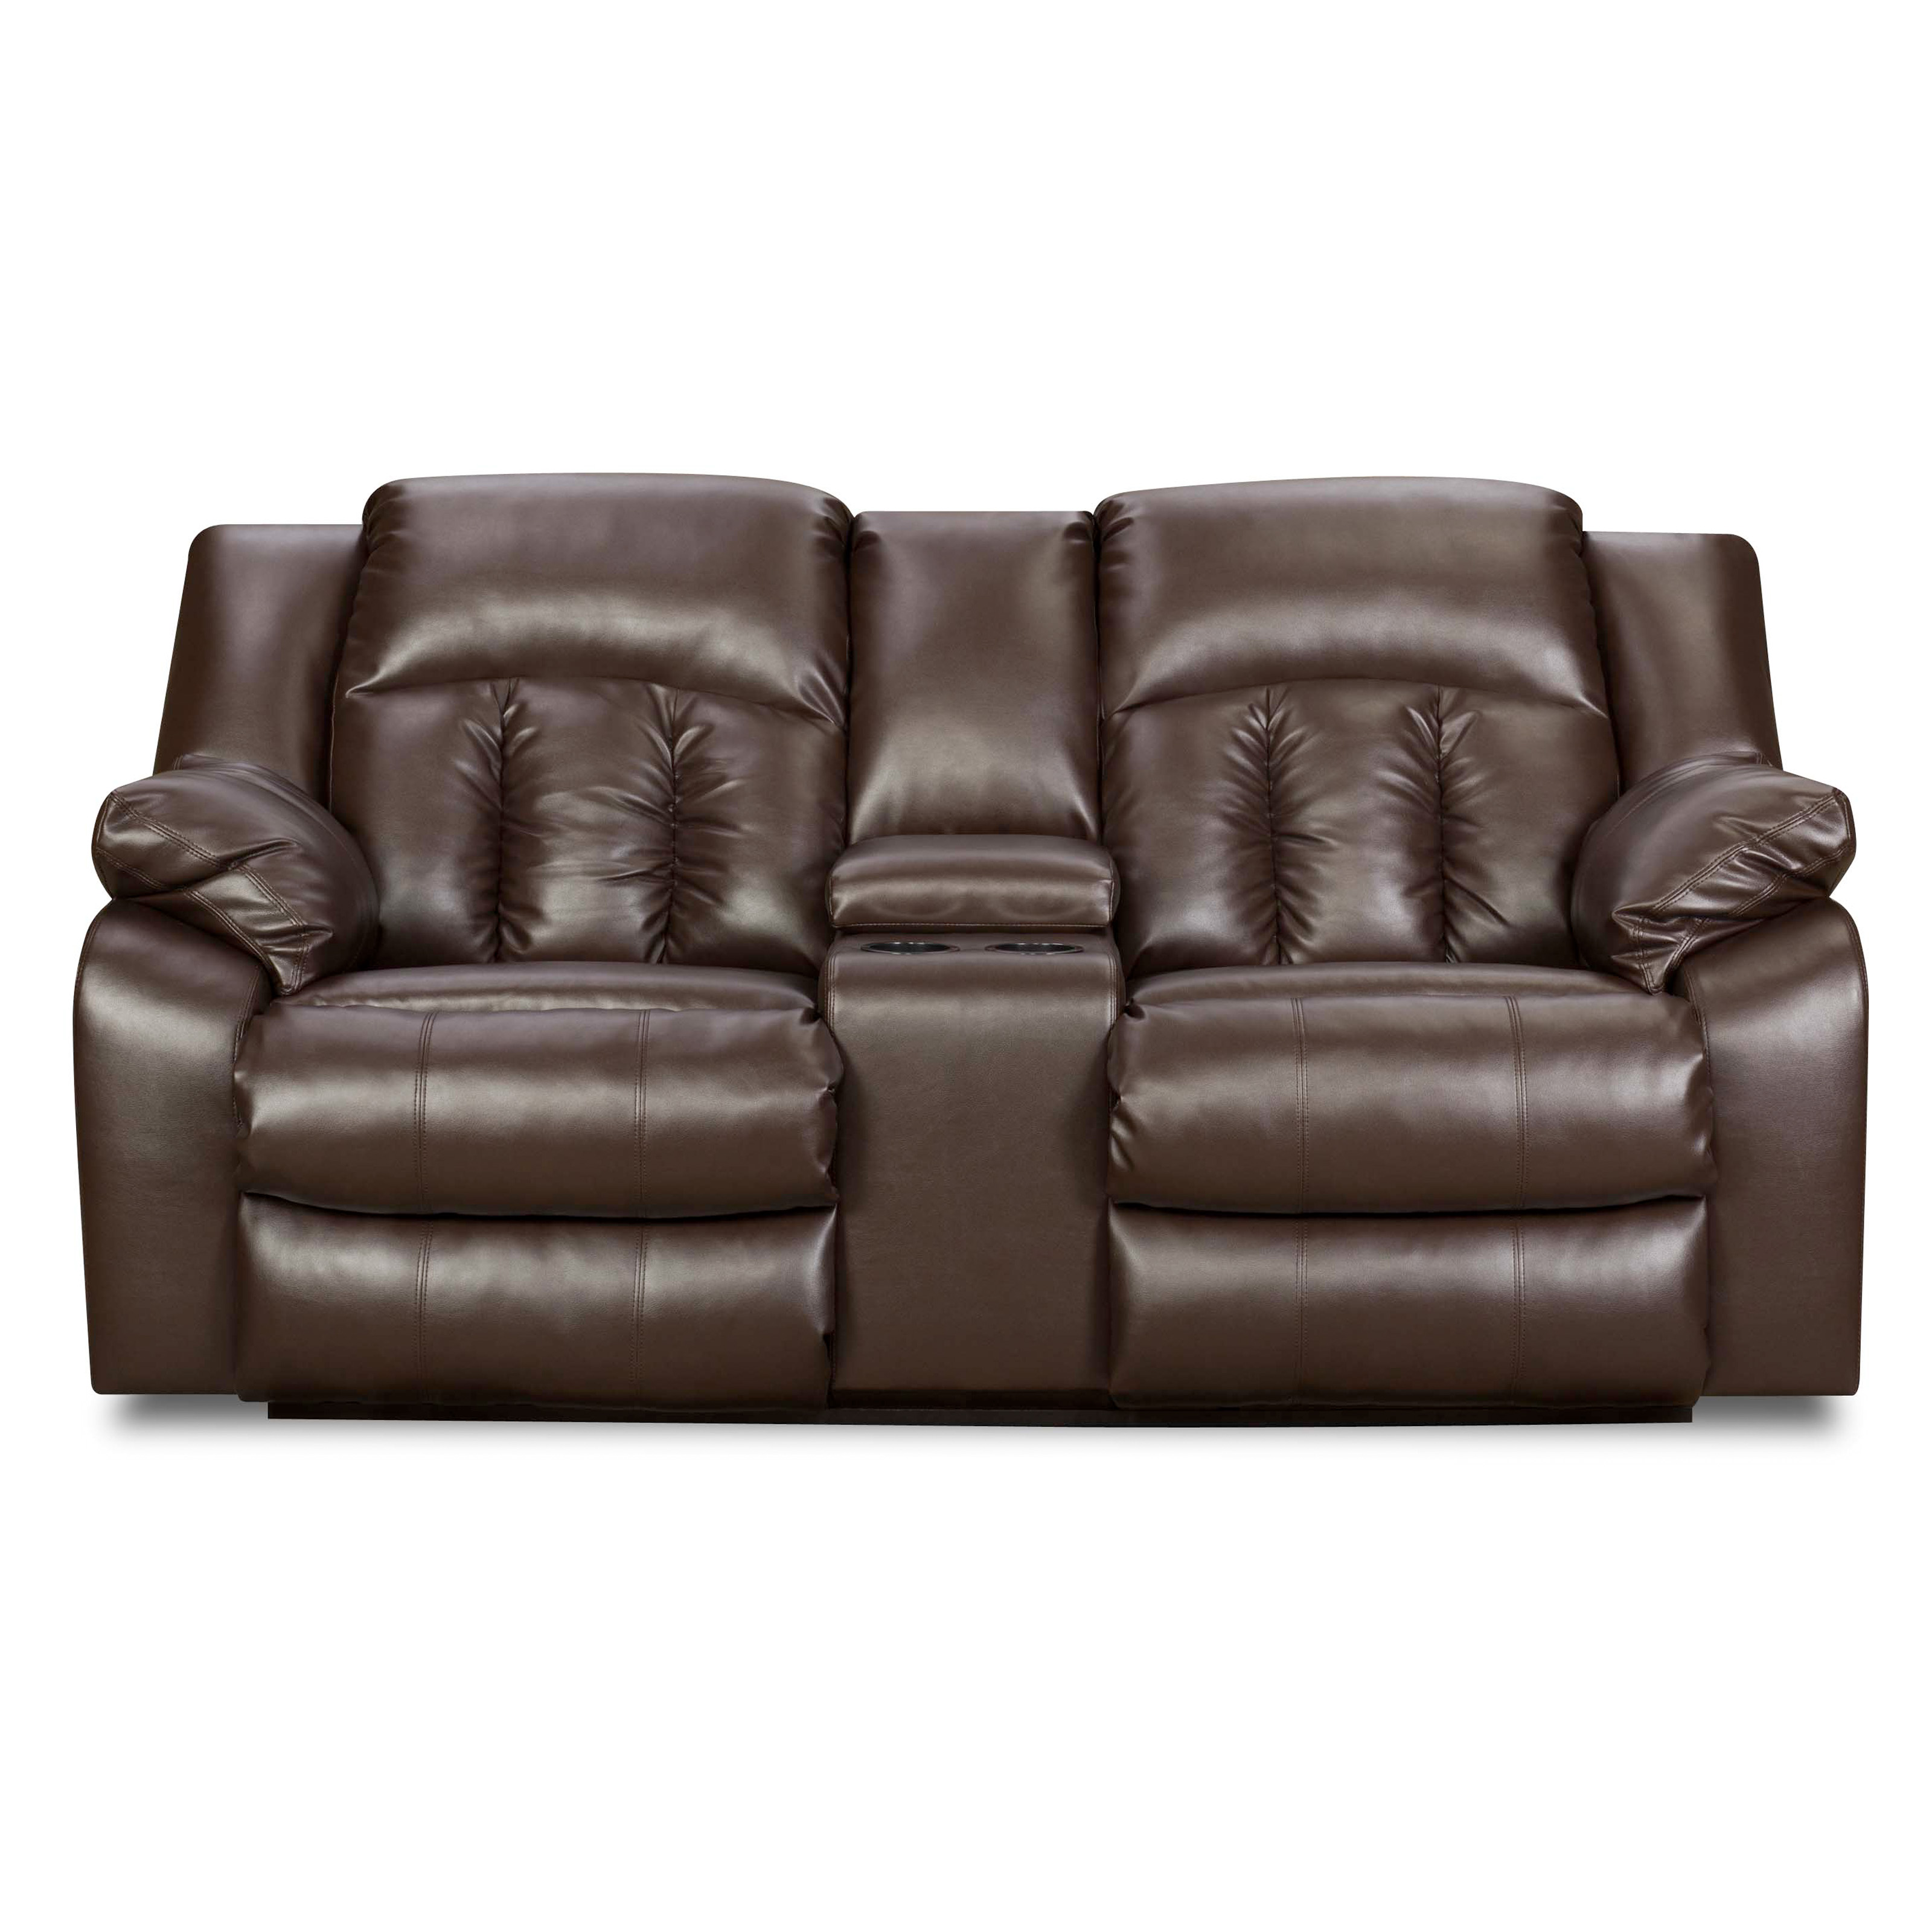 Simmons Upholstery Sebring Bonded Leather Double Motion Console Loveseat Sofas Loveseats At